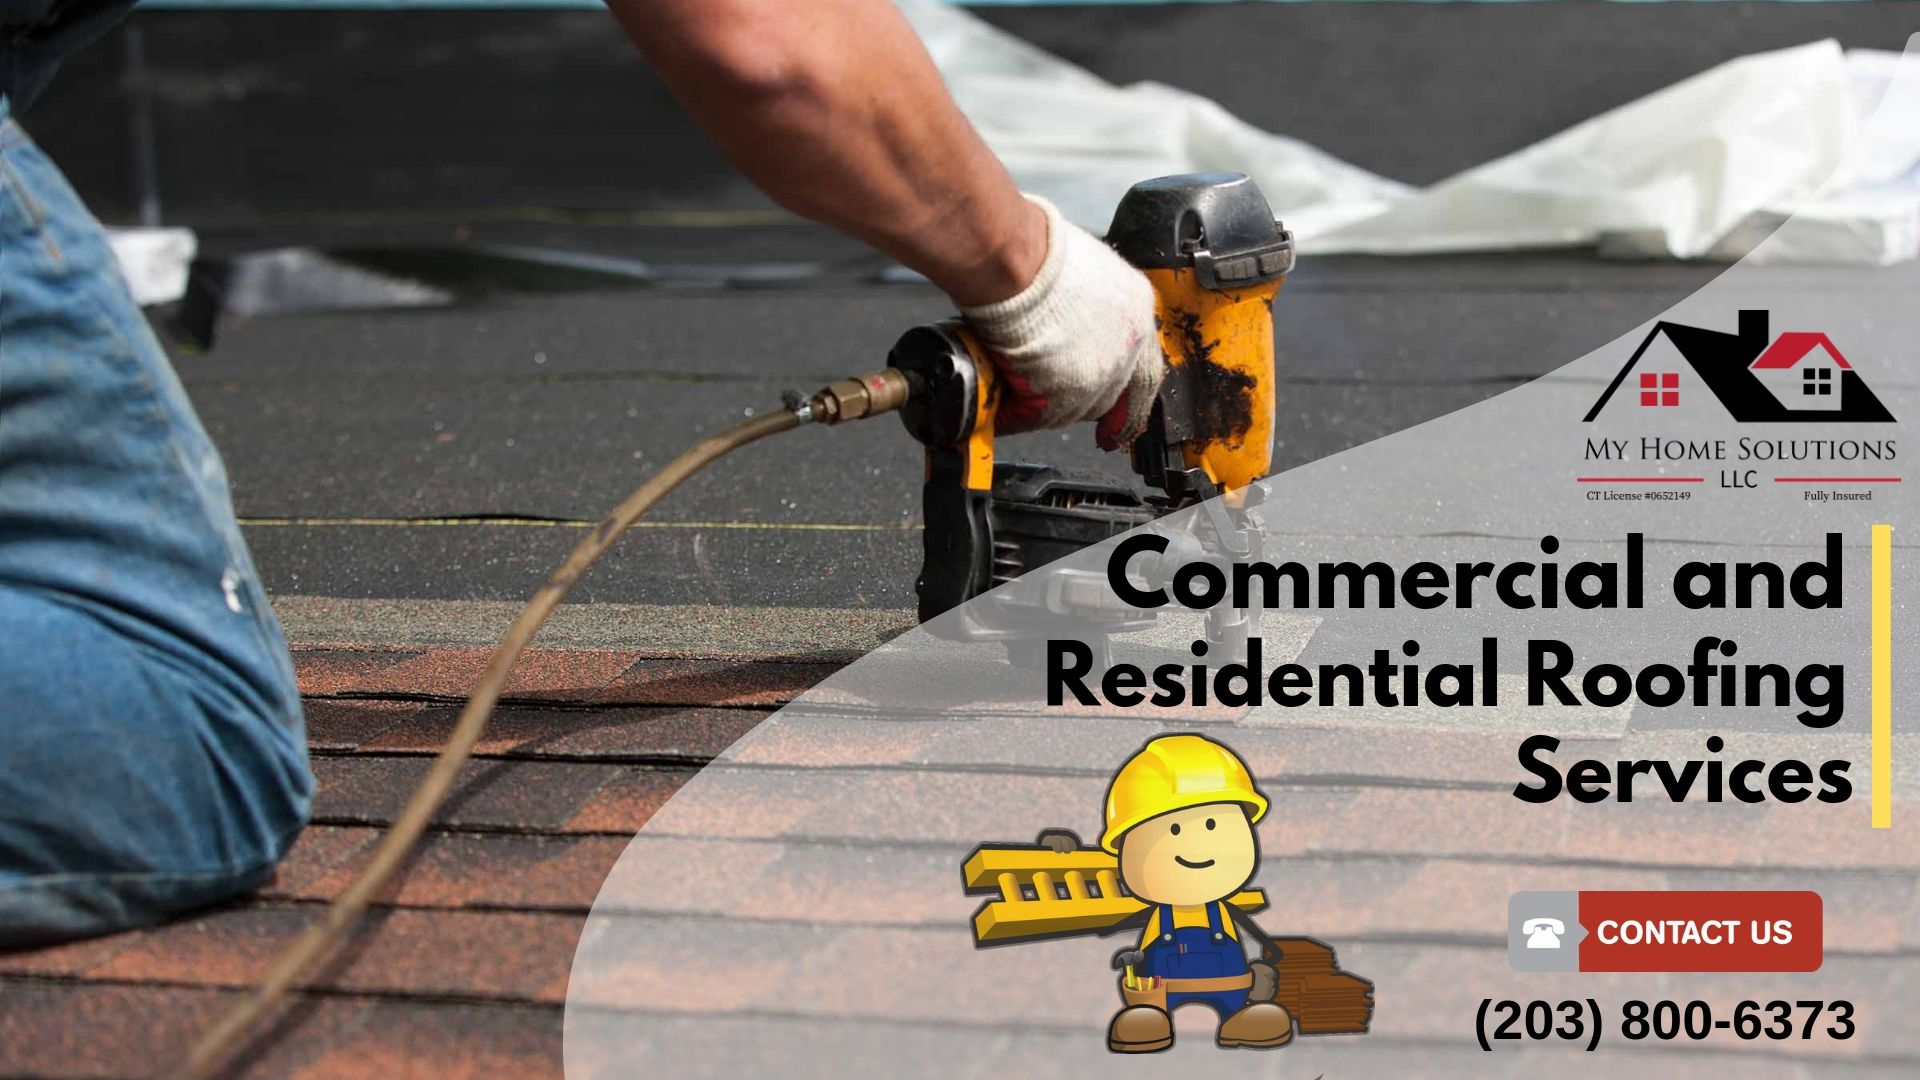 Roofing Service In Litchfield County Ct Roofing Services Roofing Litchfield County